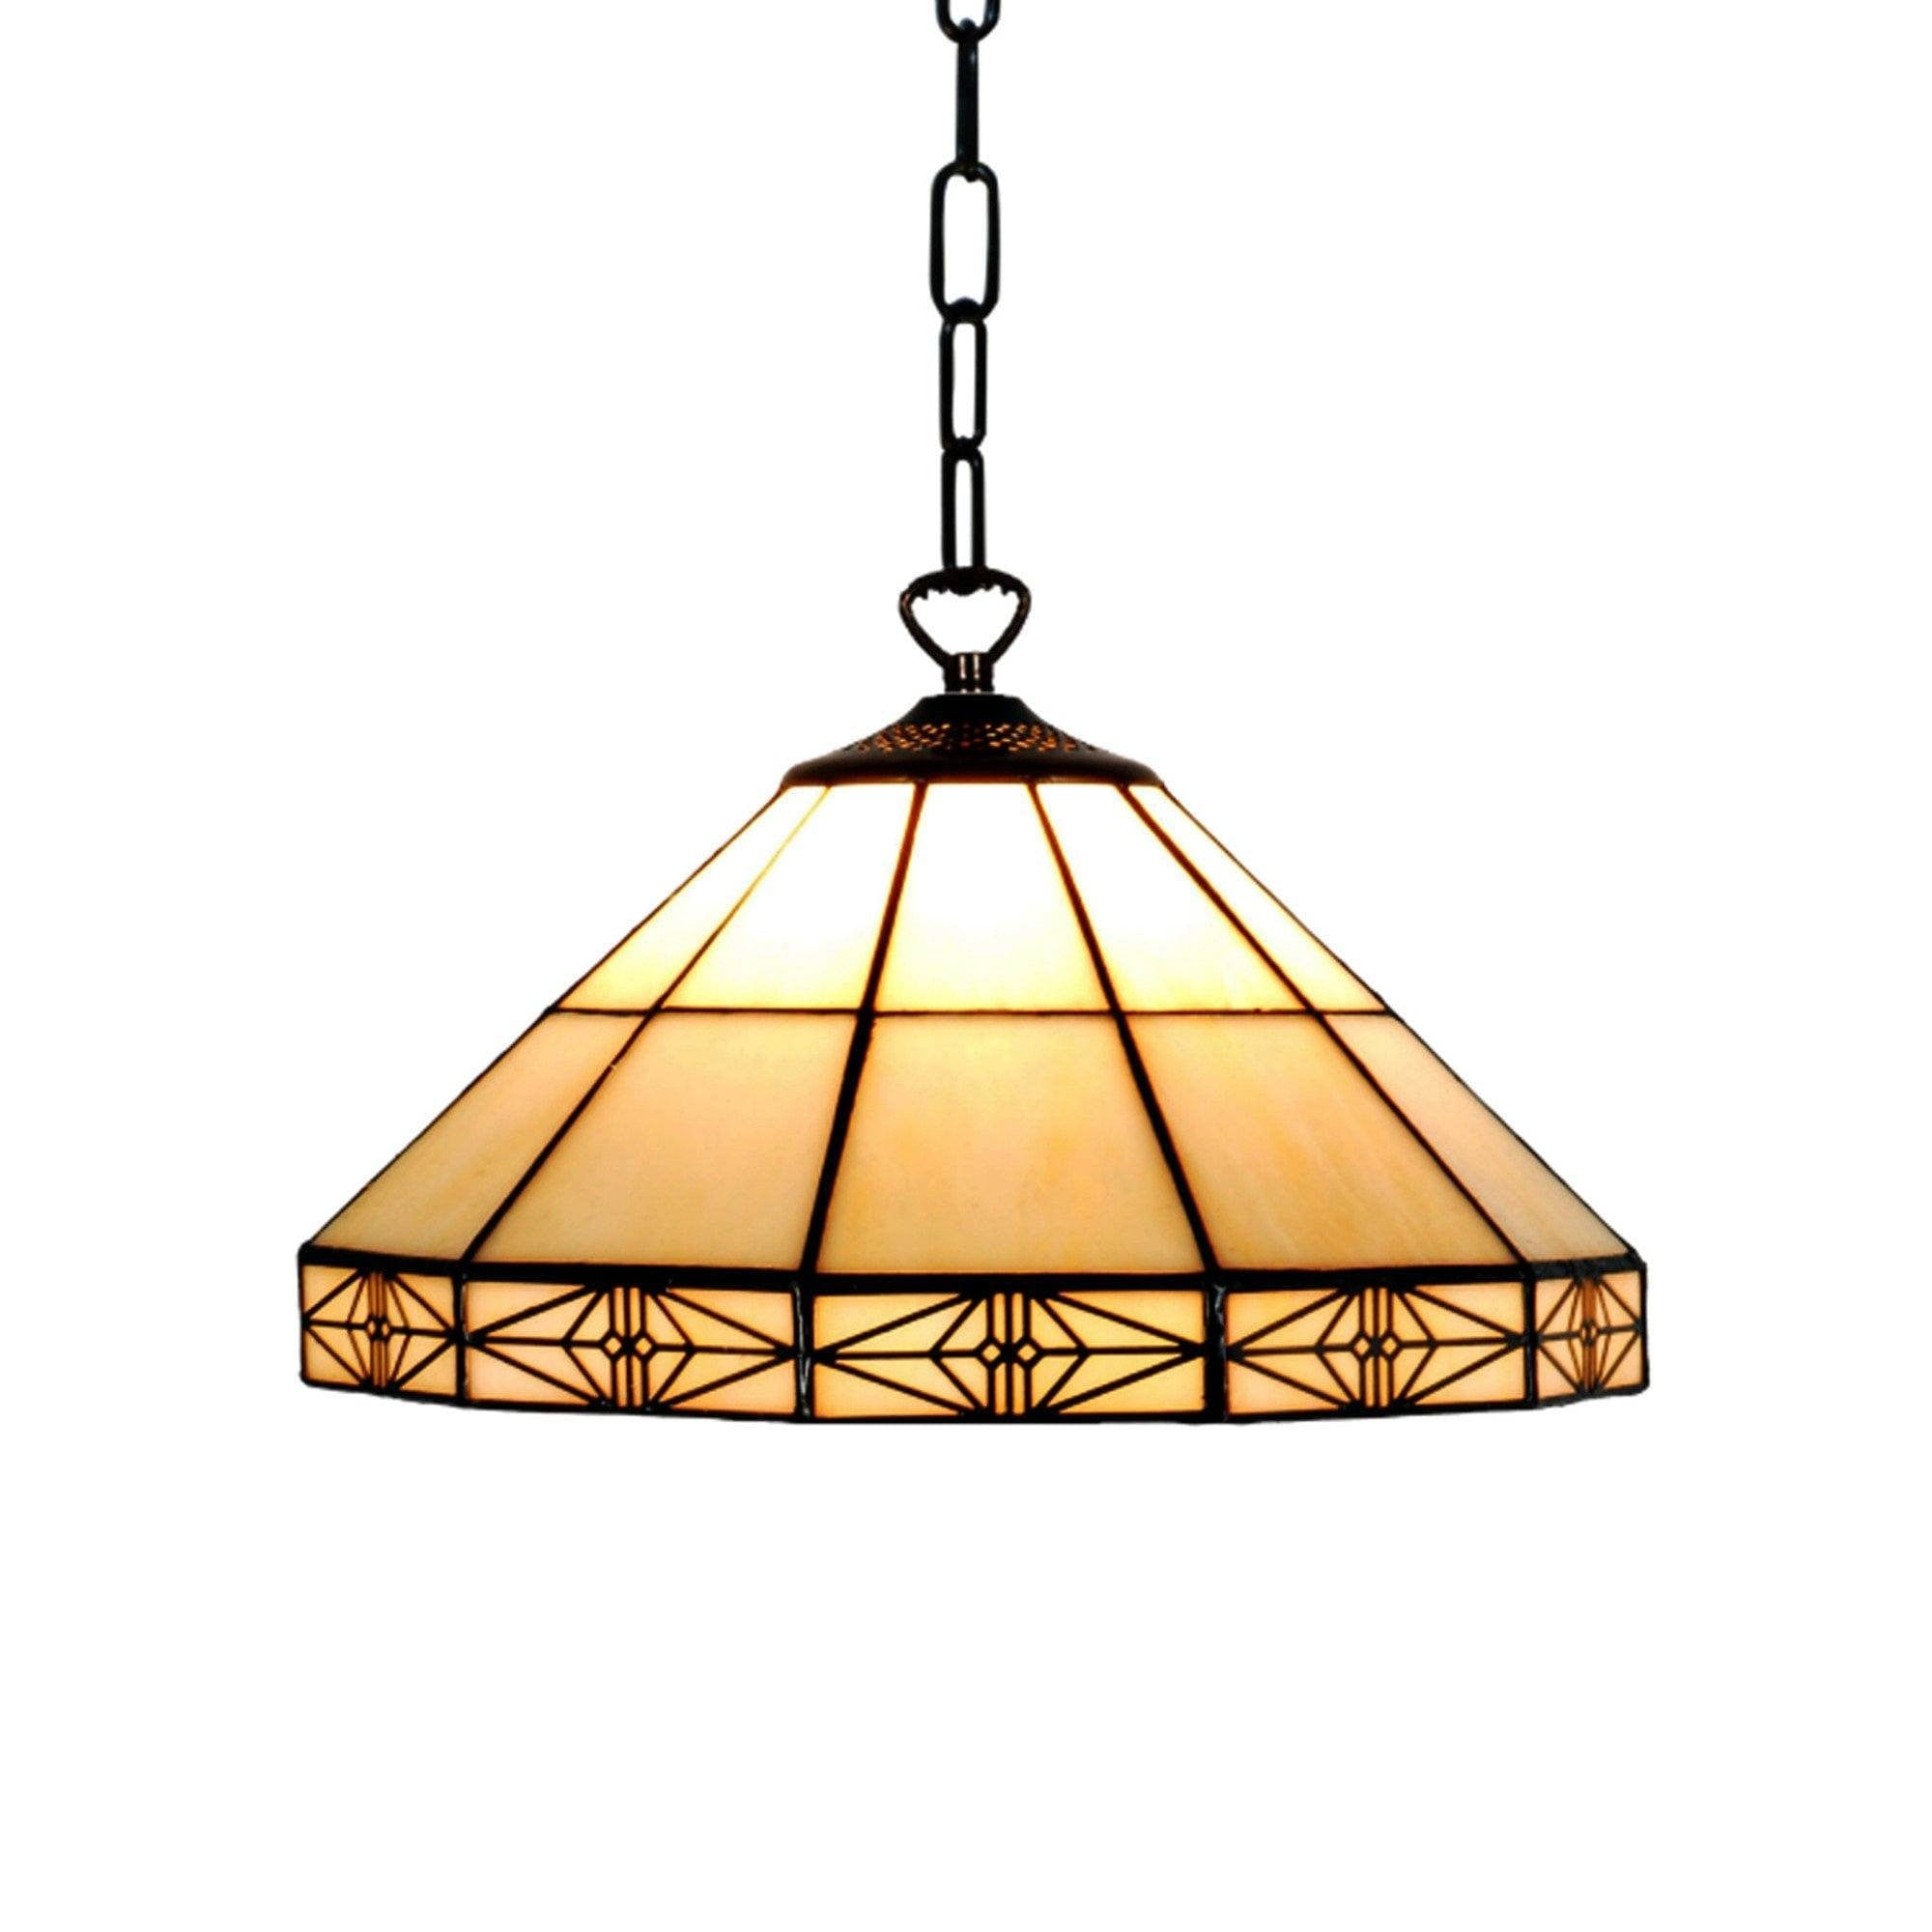 b and at copper pin jonas departments q diy ceiling lights light wire bedrooms pendant